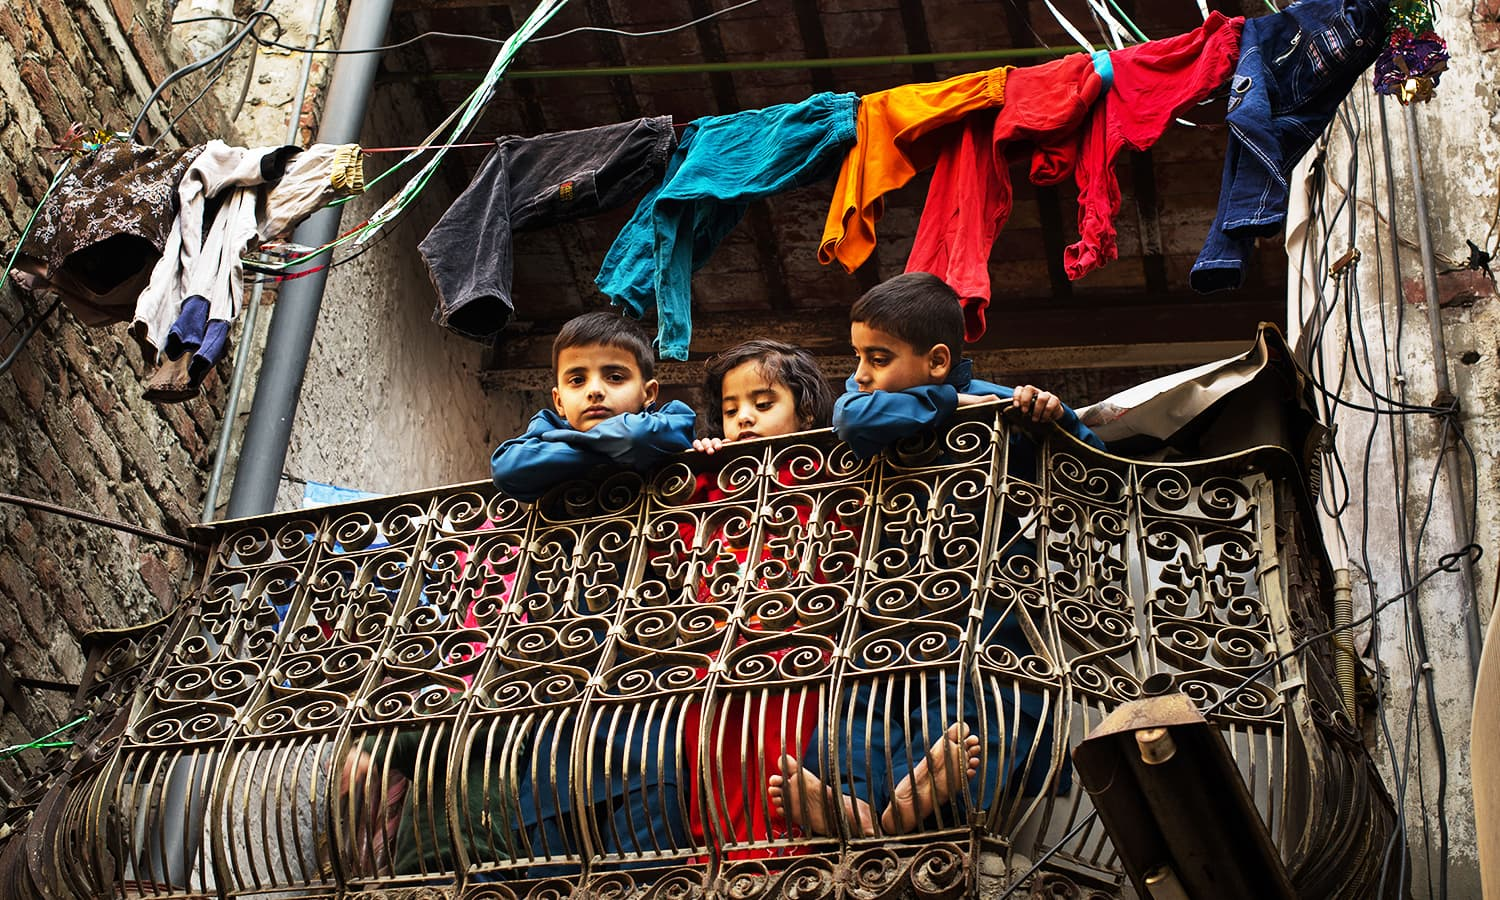 Children peer through an old balcony into a city that is changing rapidly before their eyes. — Photo by Khalil Shah/The copyrights of the image are the sole property of the photographer and cannot be re-sold or transferred in any way.